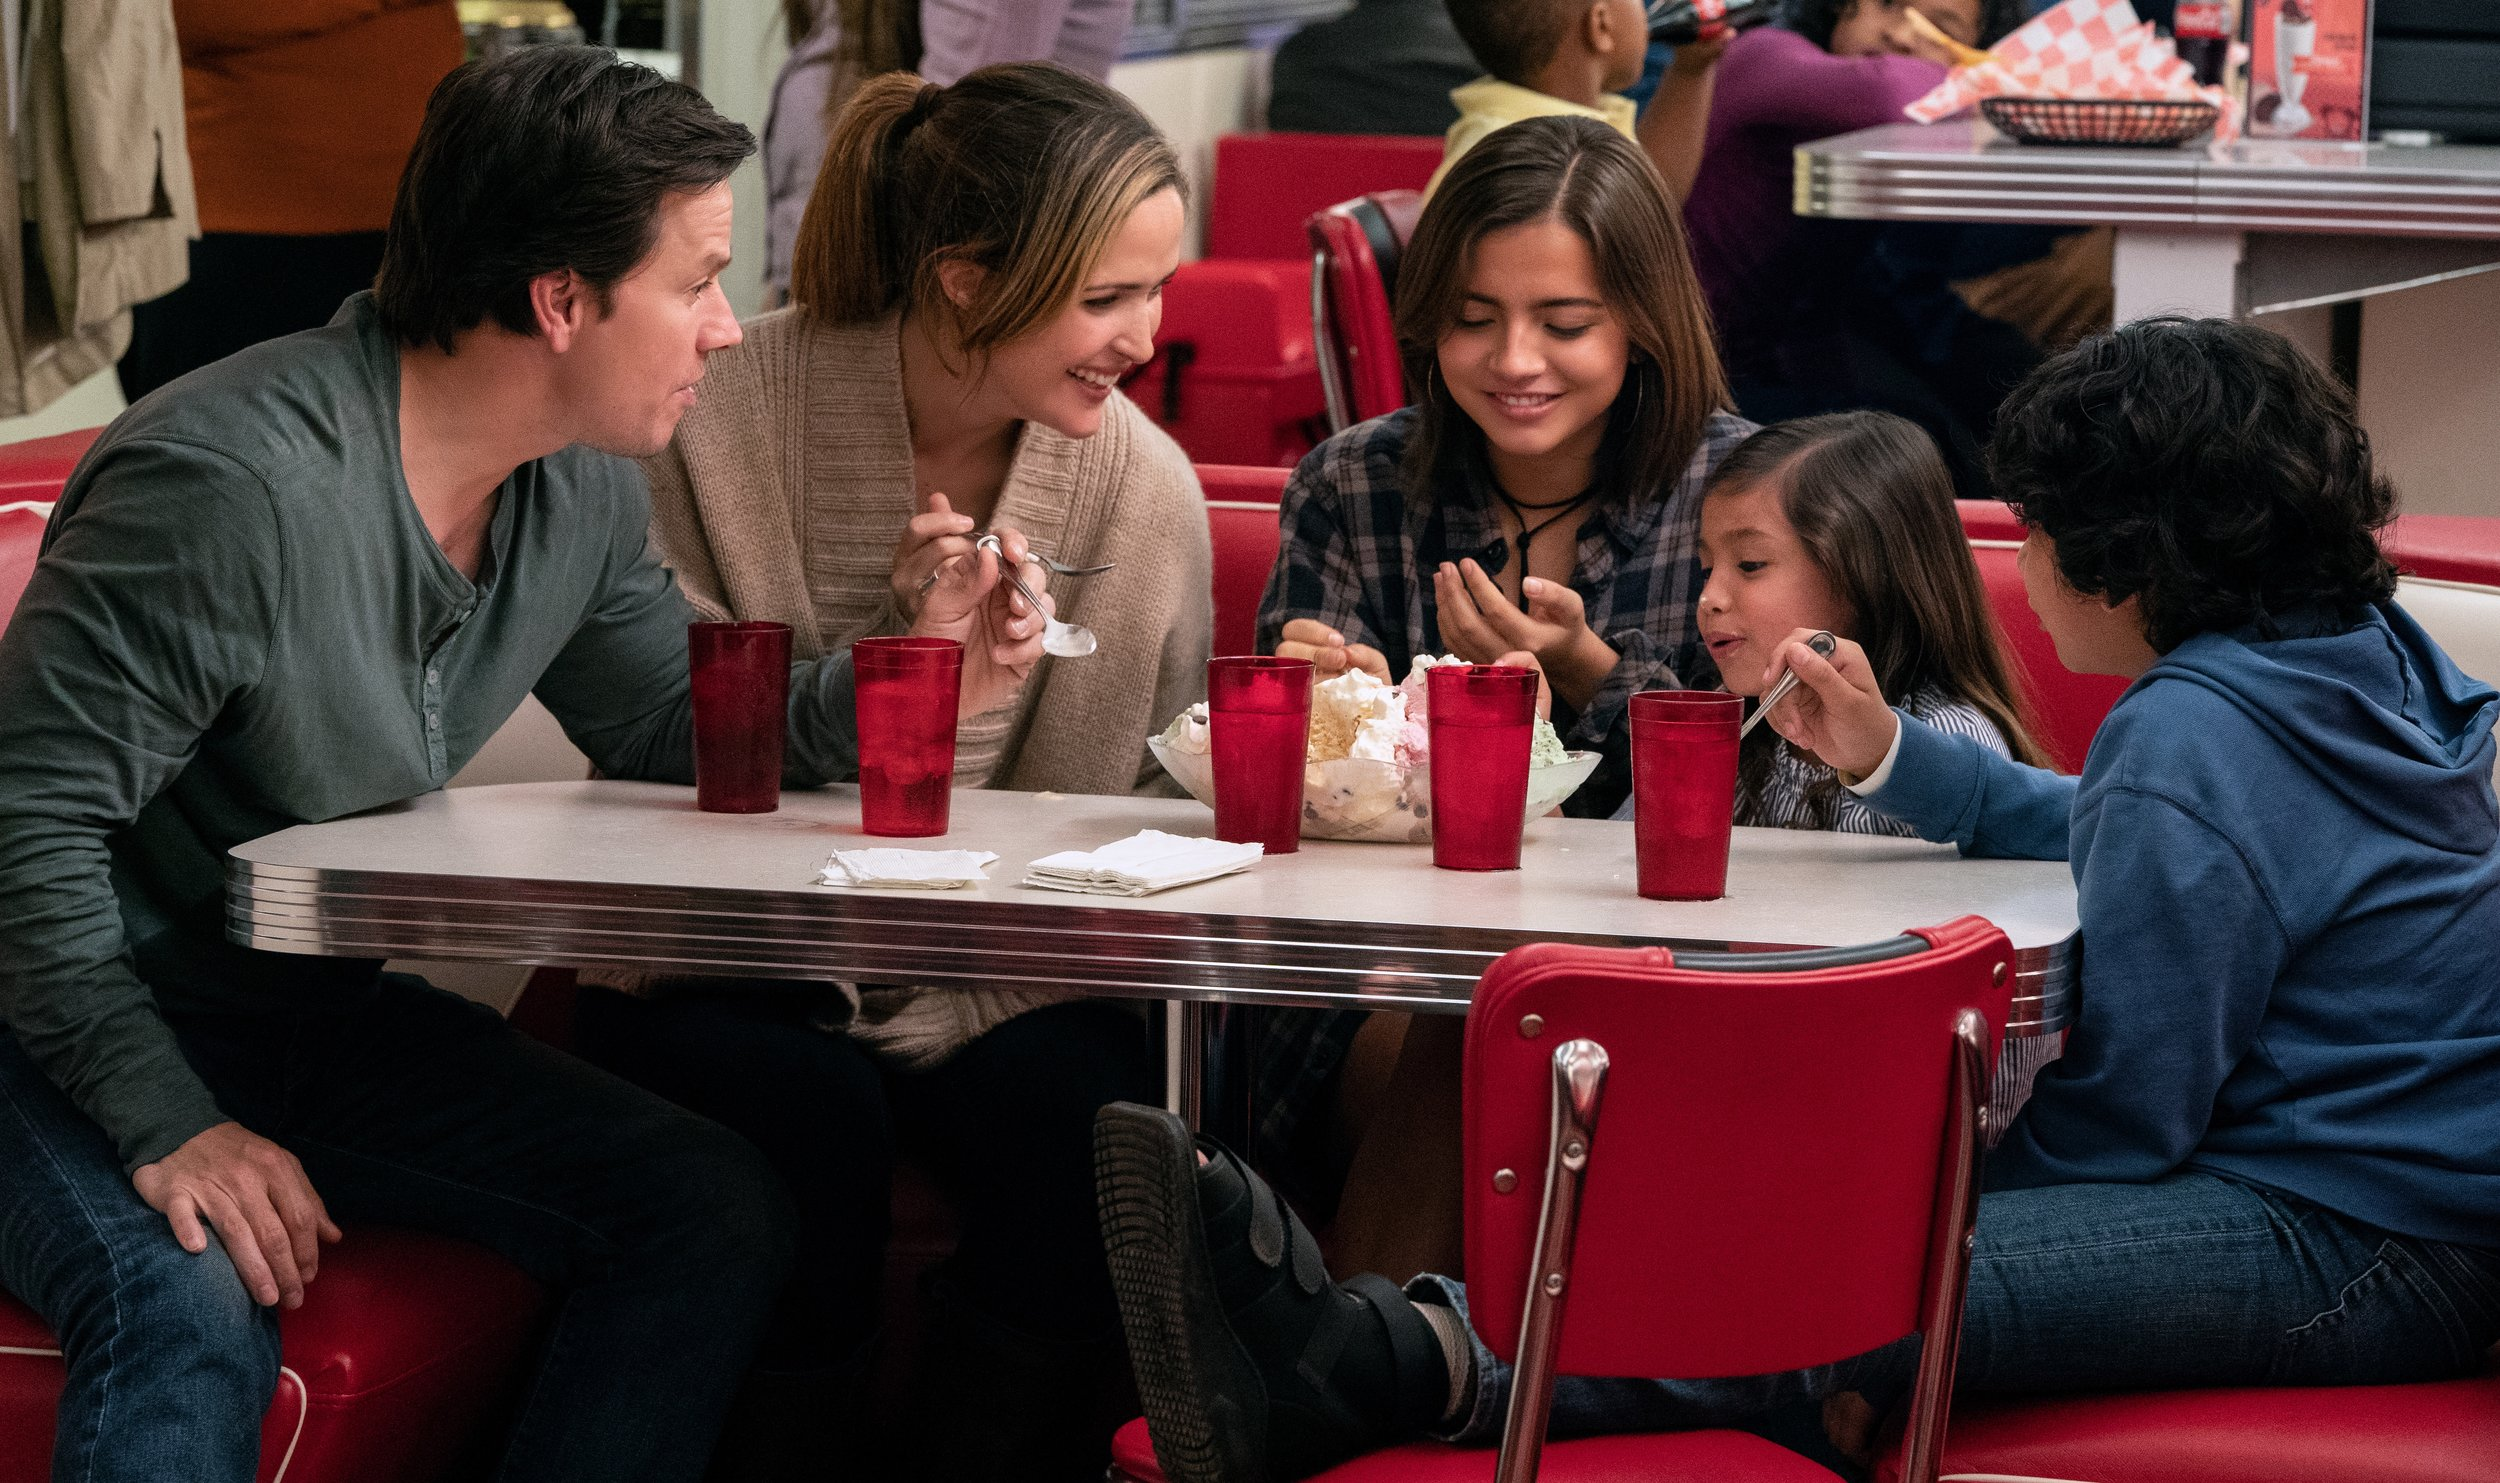 Wahlberg, Byrne, Moner, Gamiz and Quiroz are an instant family in Instant Family.